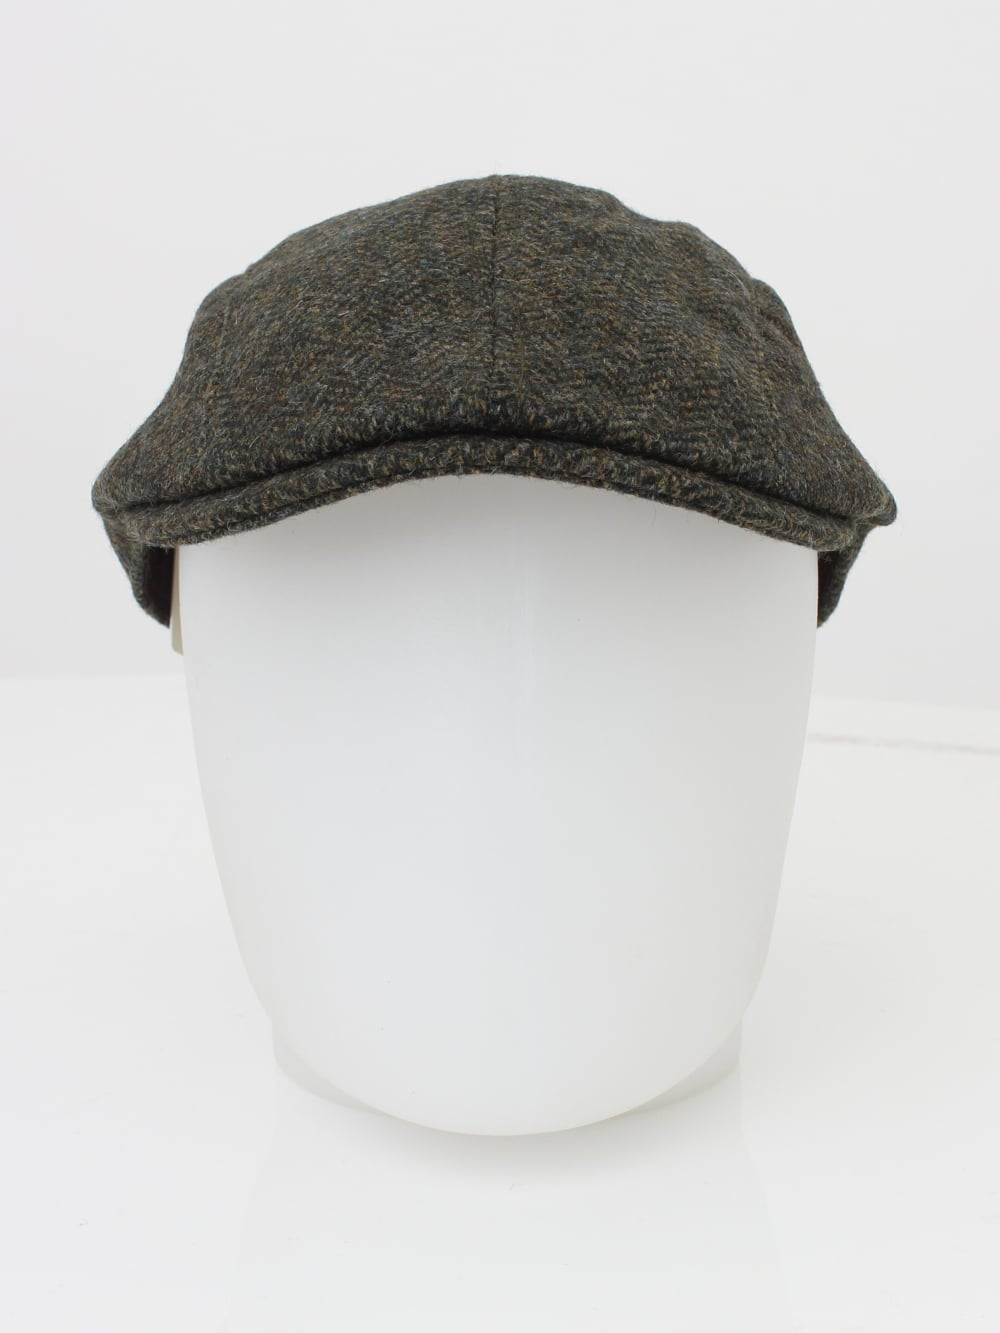 Barbour Herringbone Tweed Cap in Olive - Northern Threads 58329bc7a7c